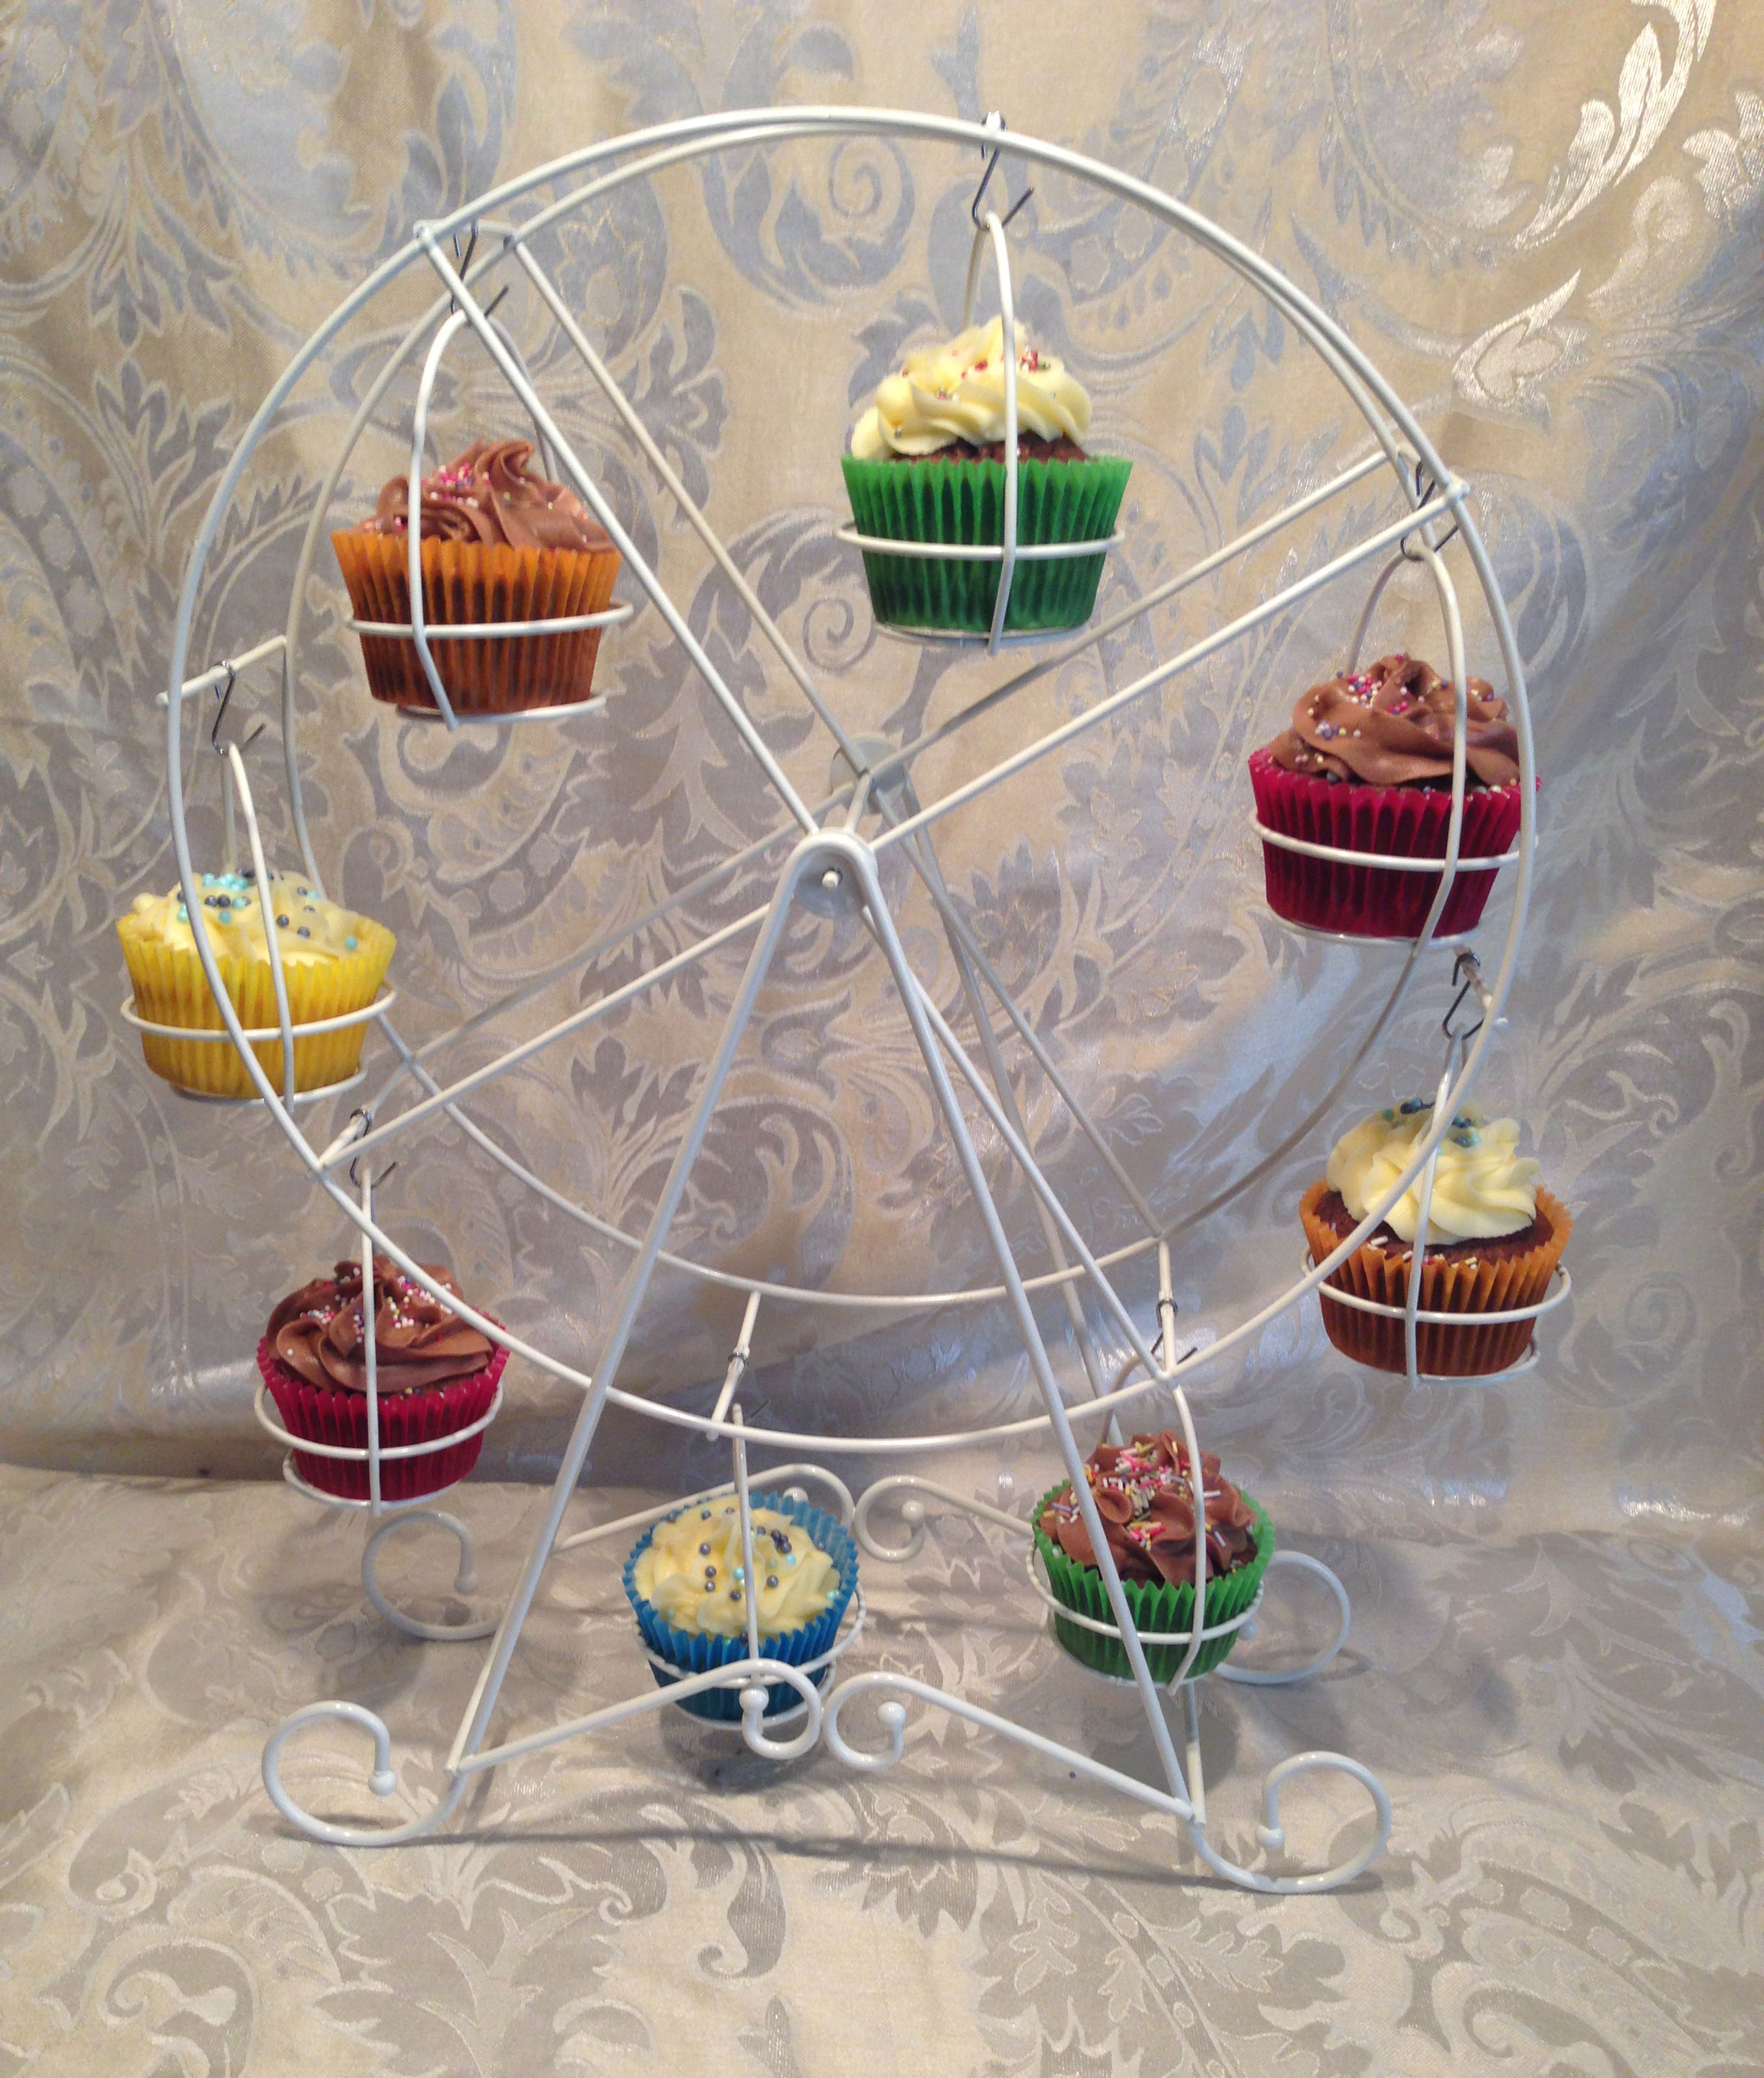 Cupcake Ferris wheel, two available